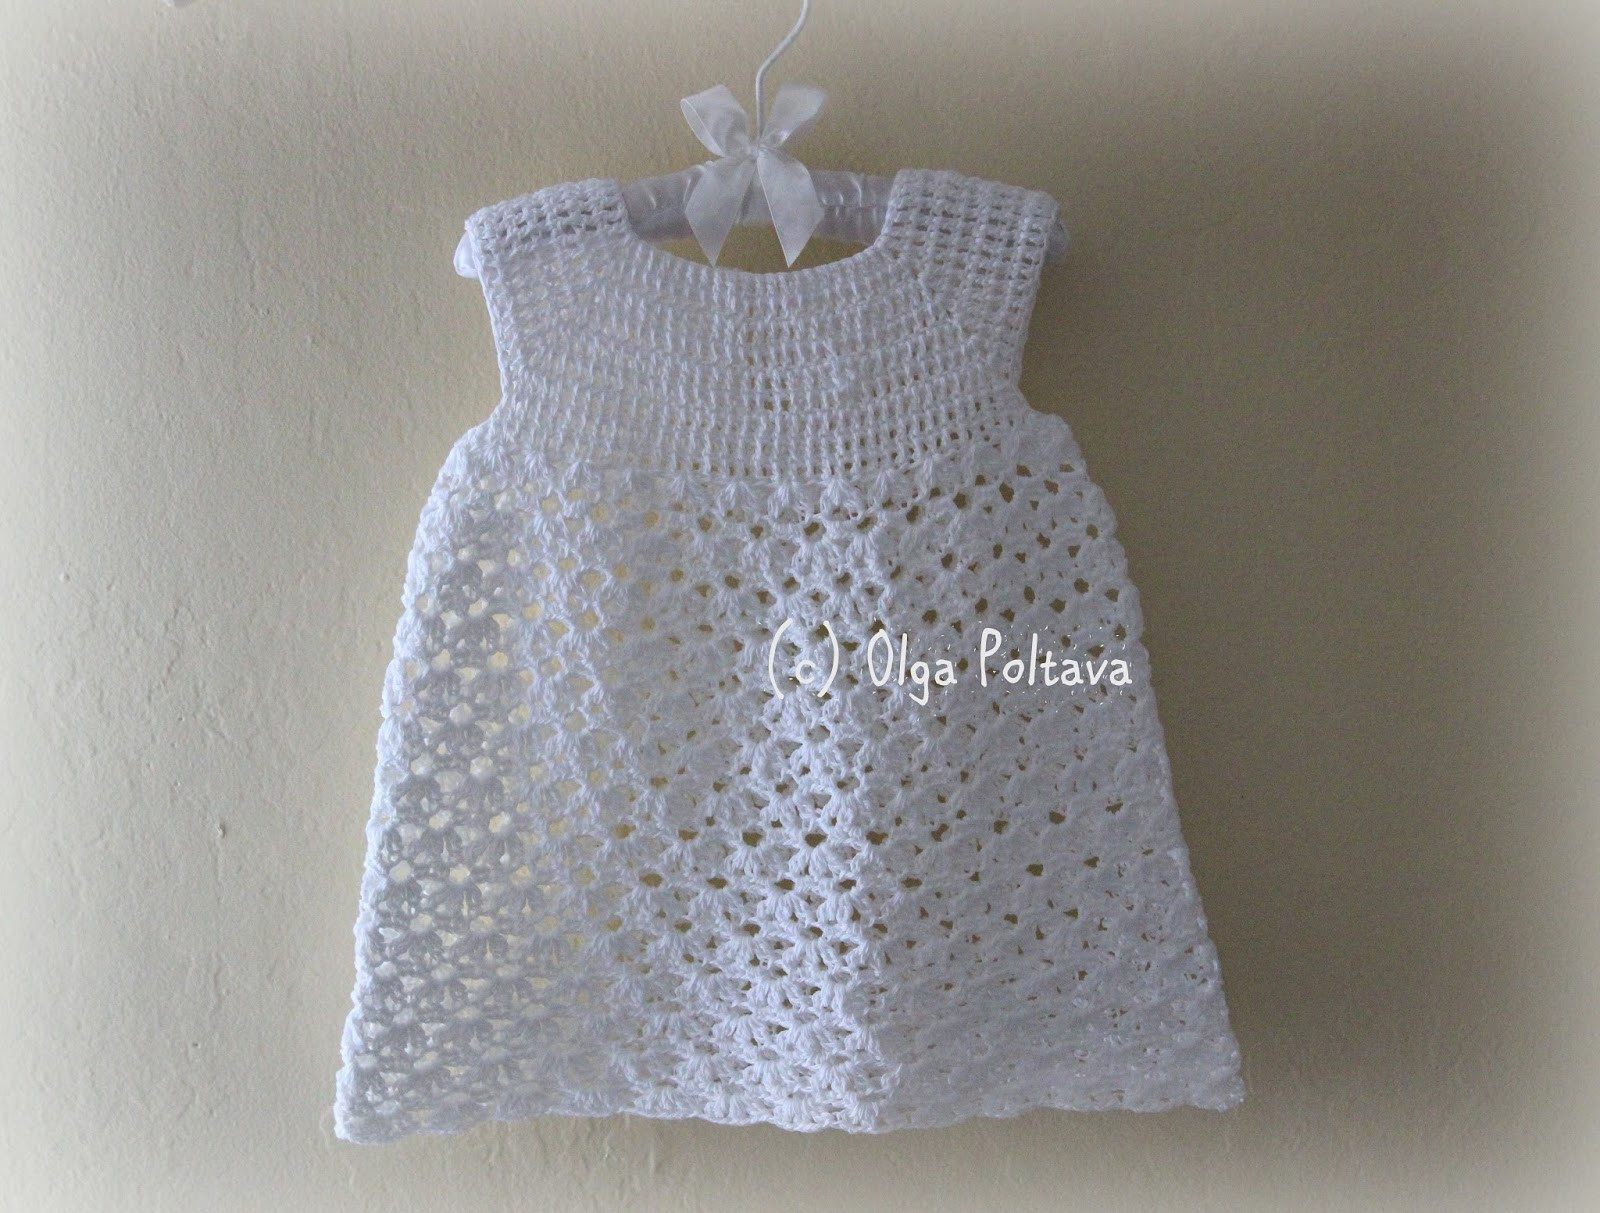 Unique Crochet New Patterns Crochet and Knit Free Crochet toddler Dress Patterns Of Delightful 45 Pics Free Crochet toddler Dress Patterns